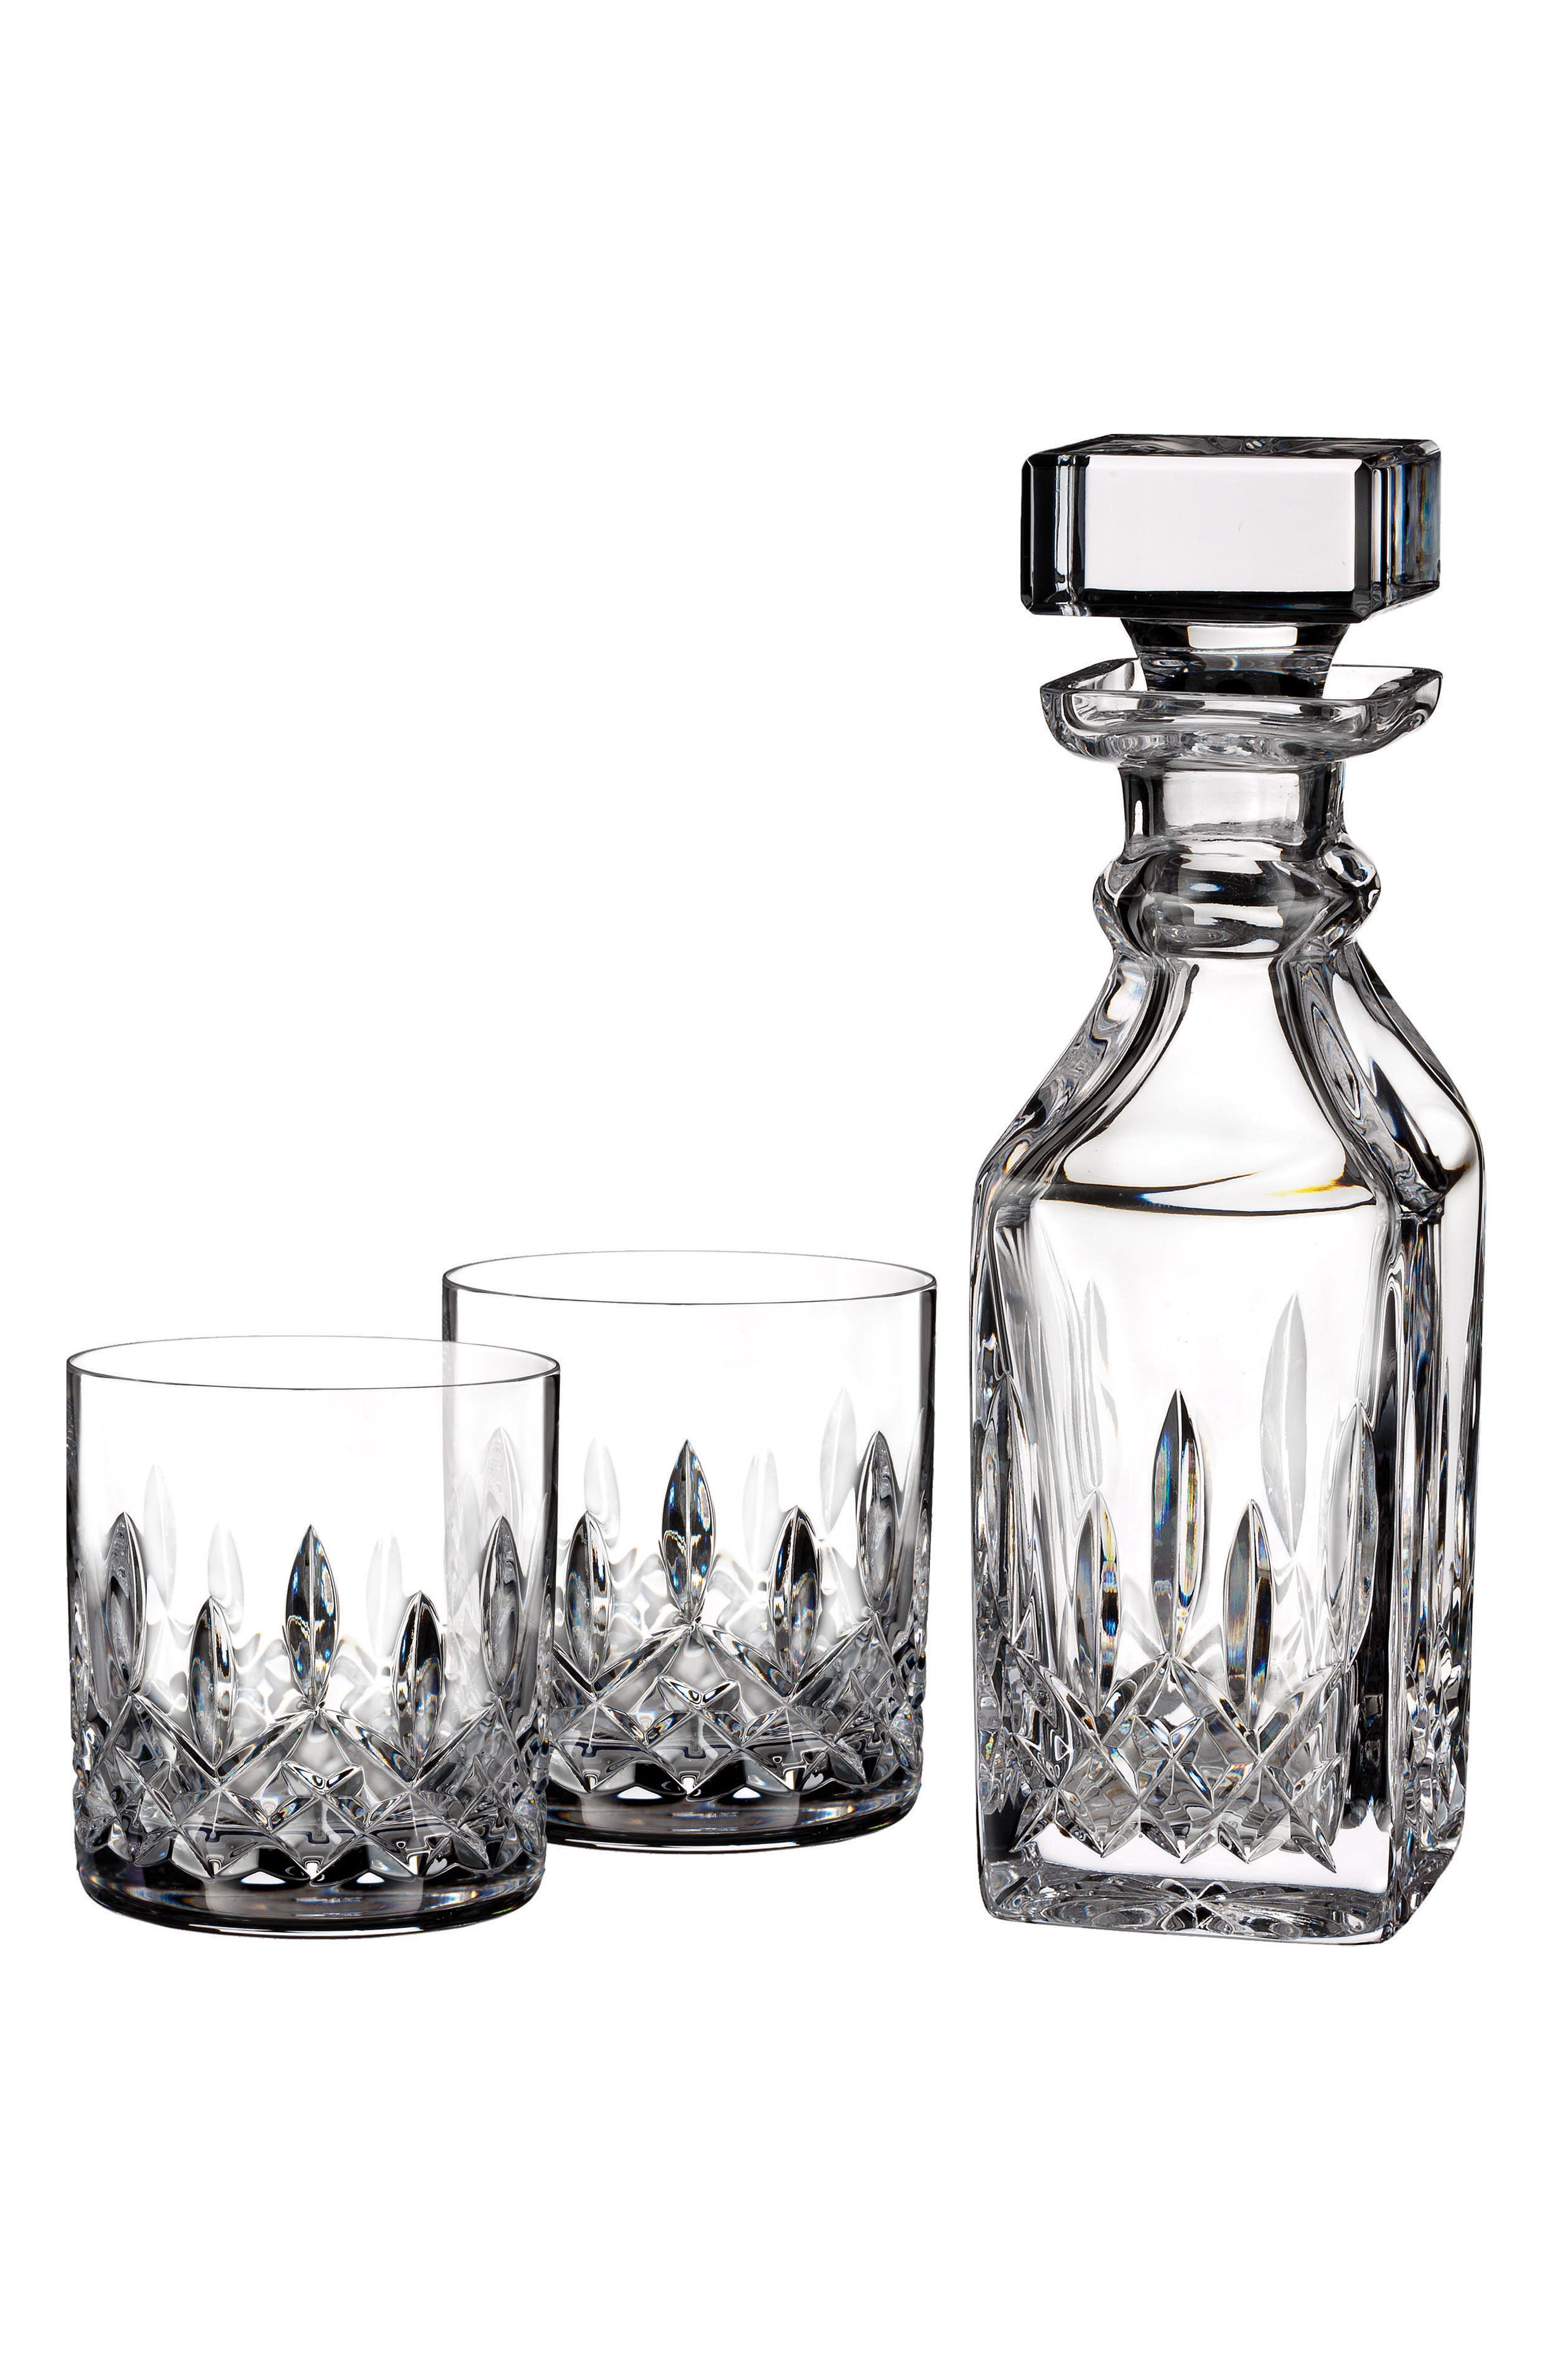 Alternate Image 1 Selected - Waterford Lismore Square Lead Crystal Decanter & Tumbler Glasses